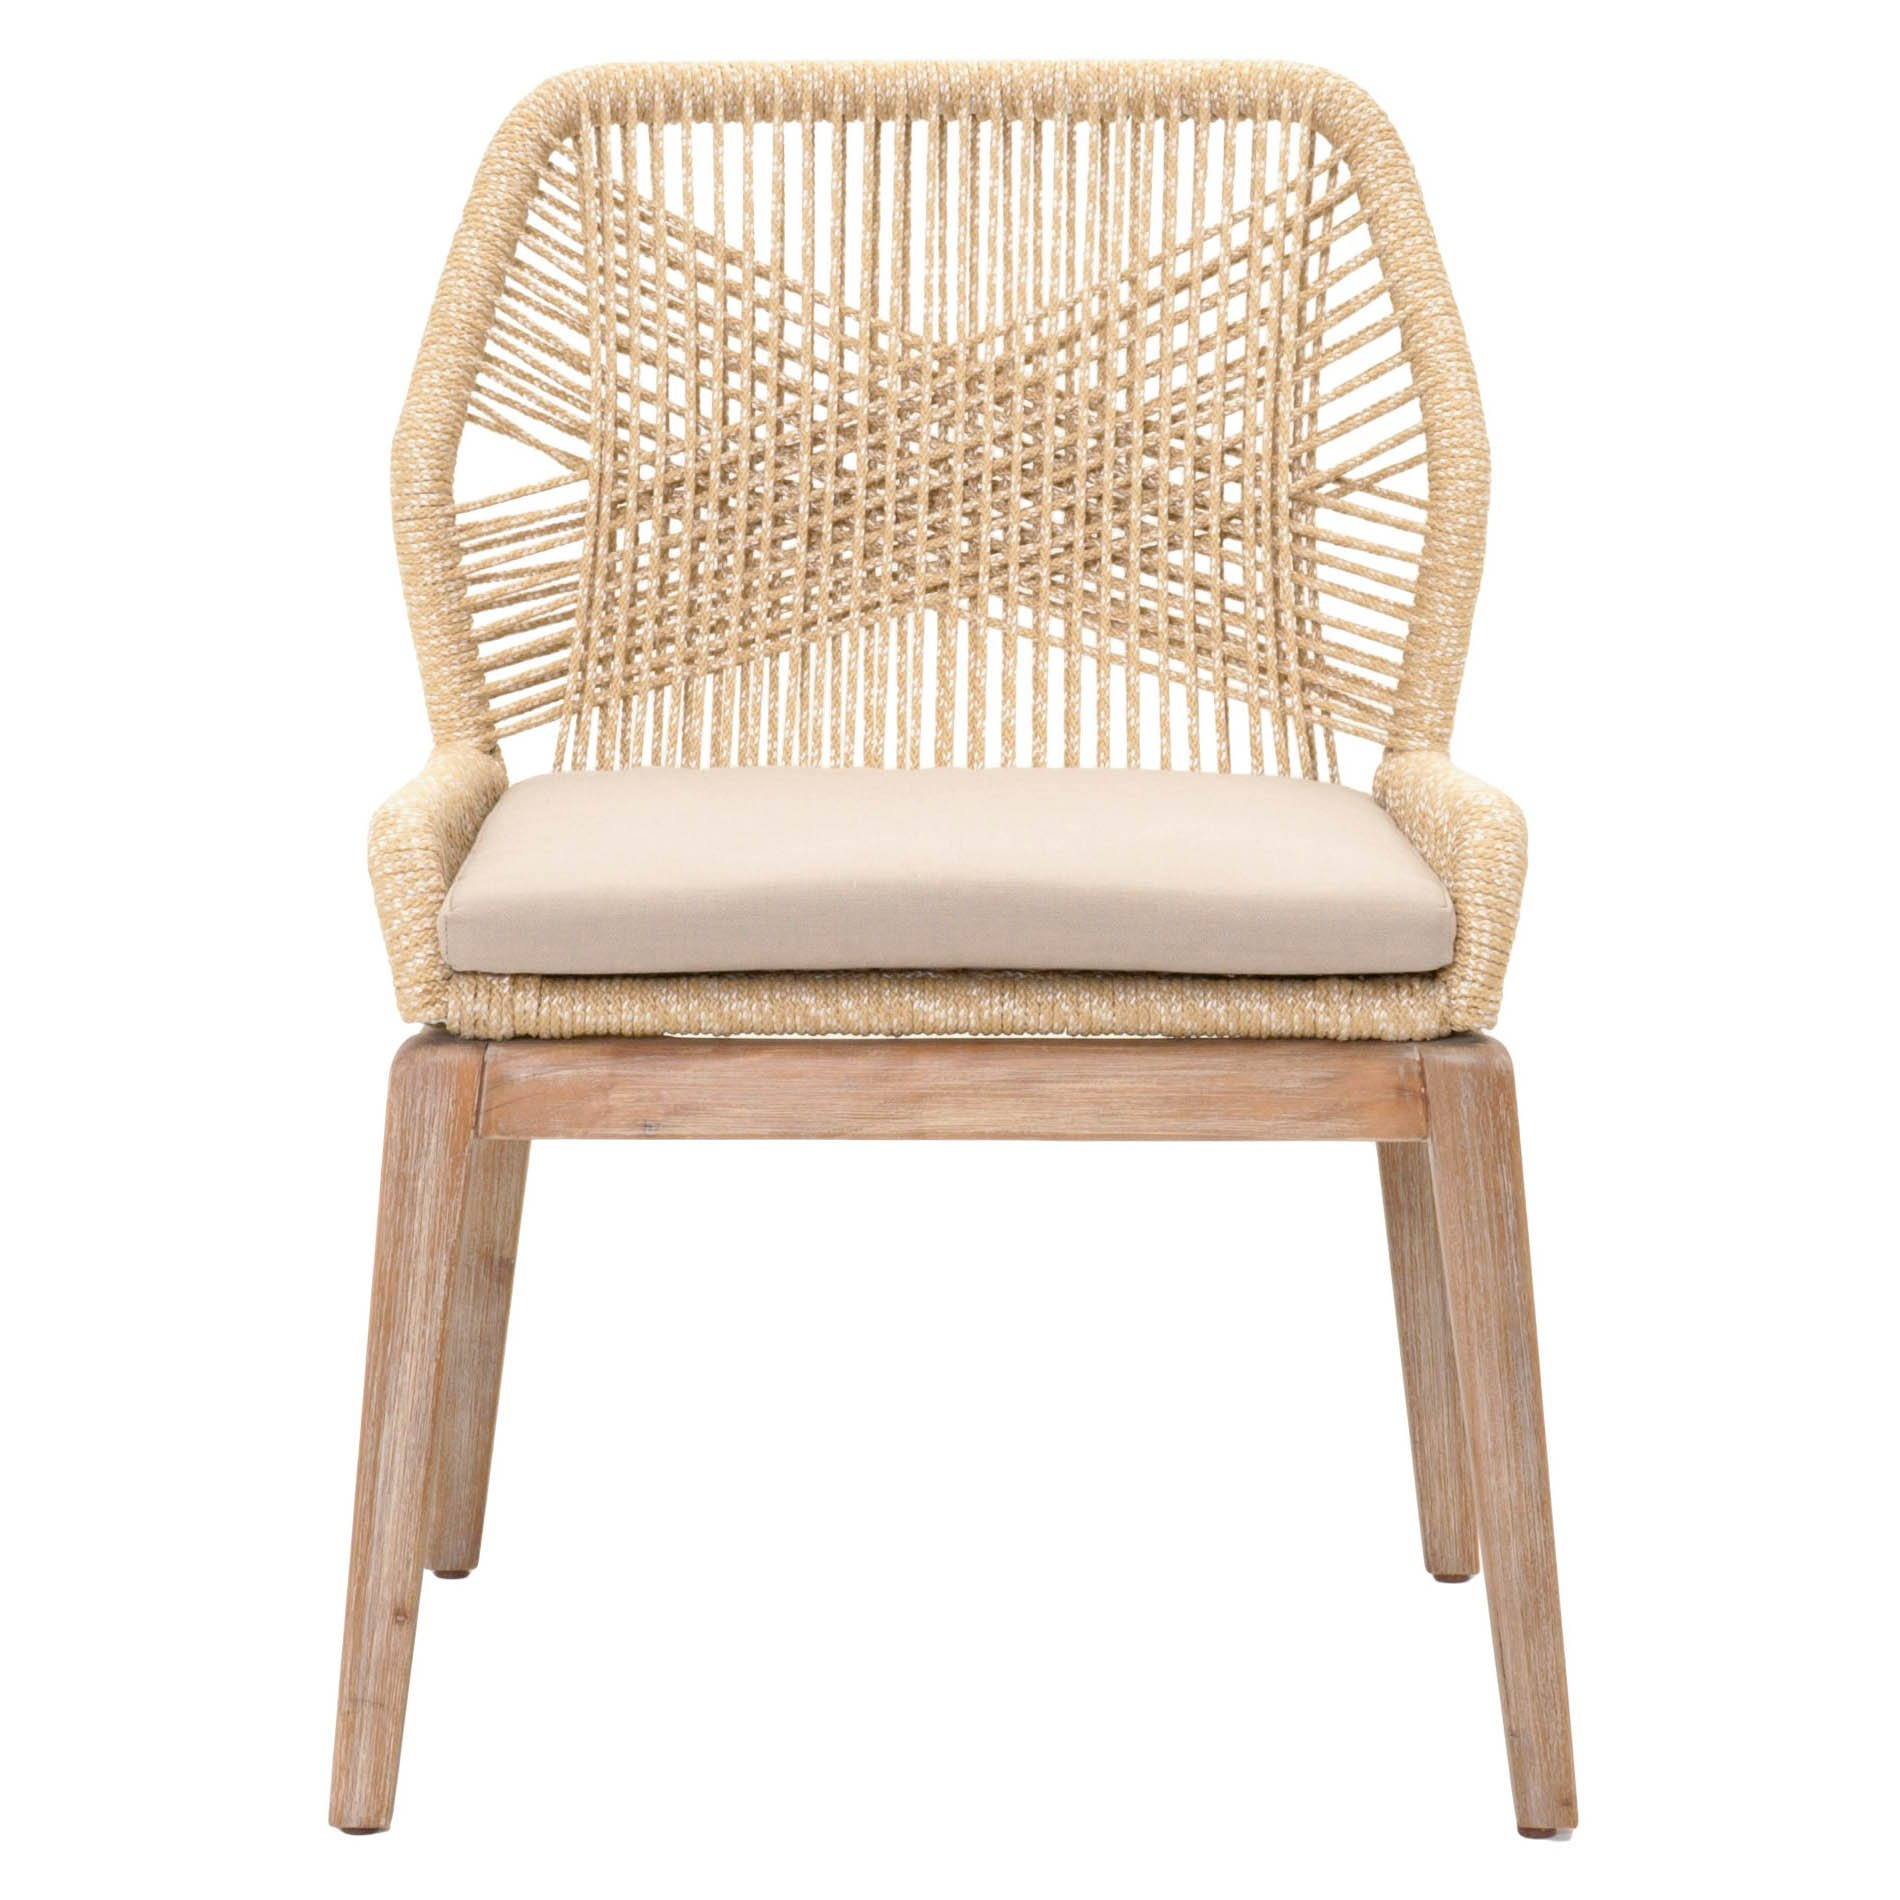 Rope Dining Chair In 2020 | Side Chairs Dining, Dining With Regard To Aime Upholstered Parsons Chairs In Beige (View 12 of 15)